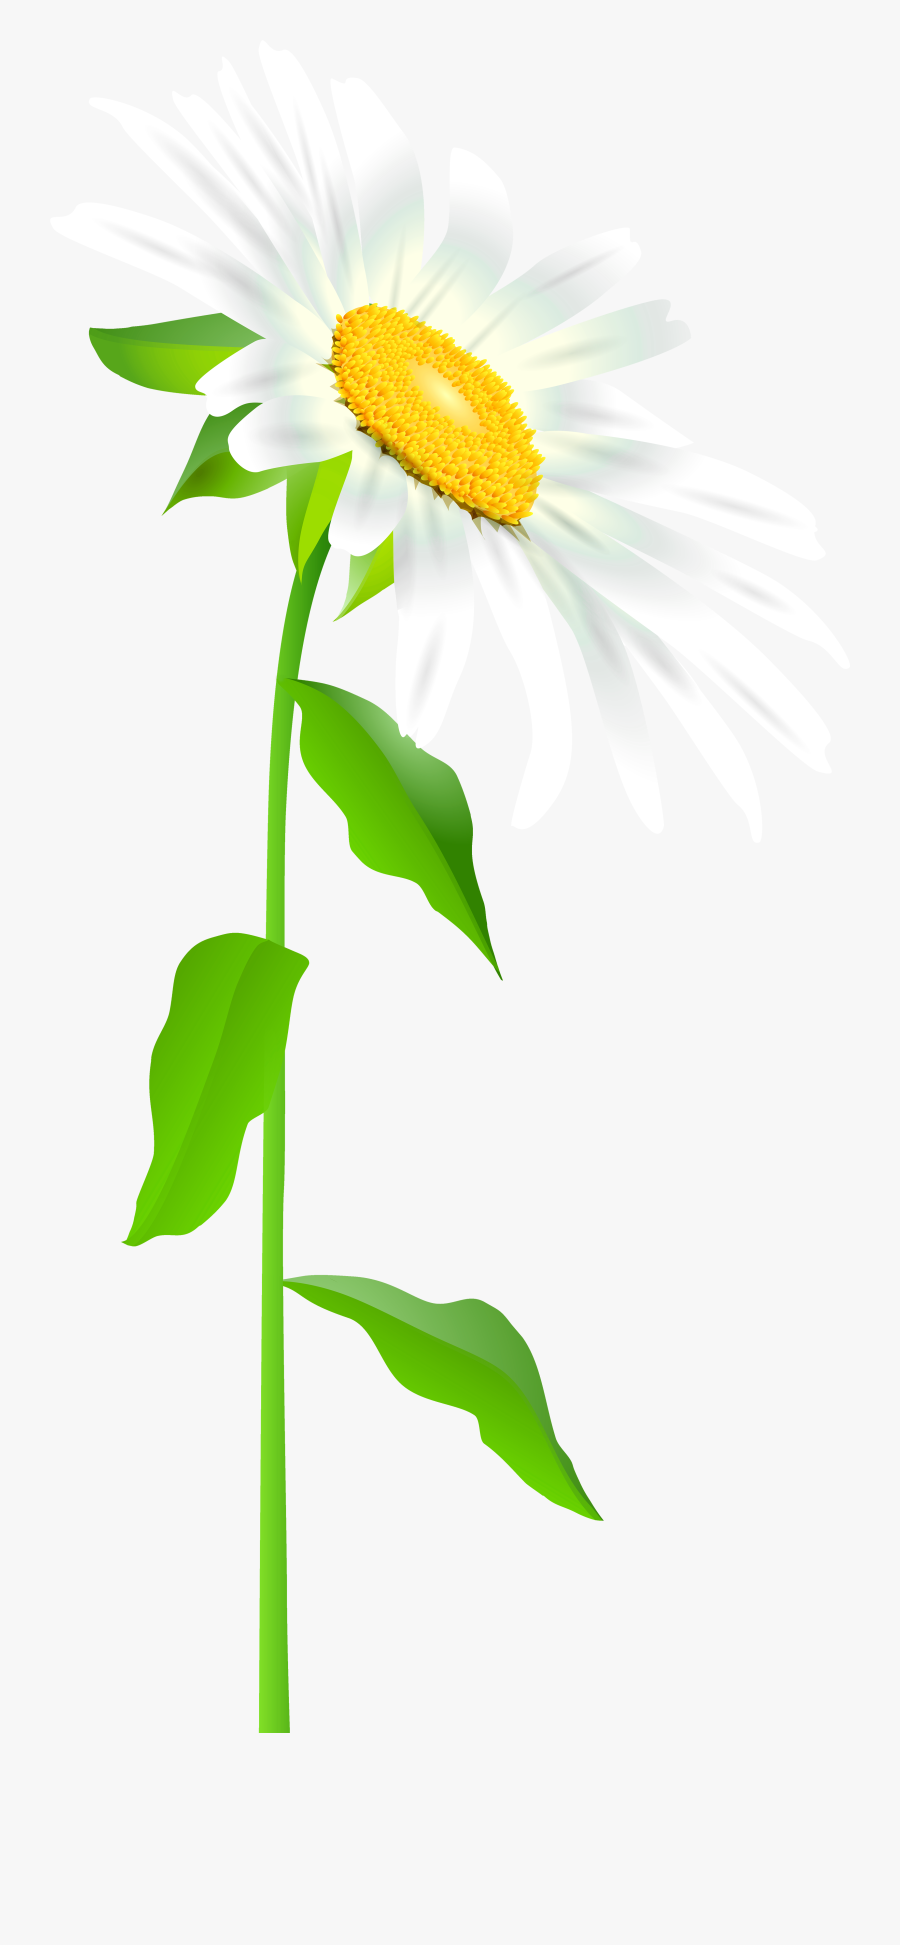 Daisy Clipart Long Stem Flower - Full Picture Of A Daisy ...